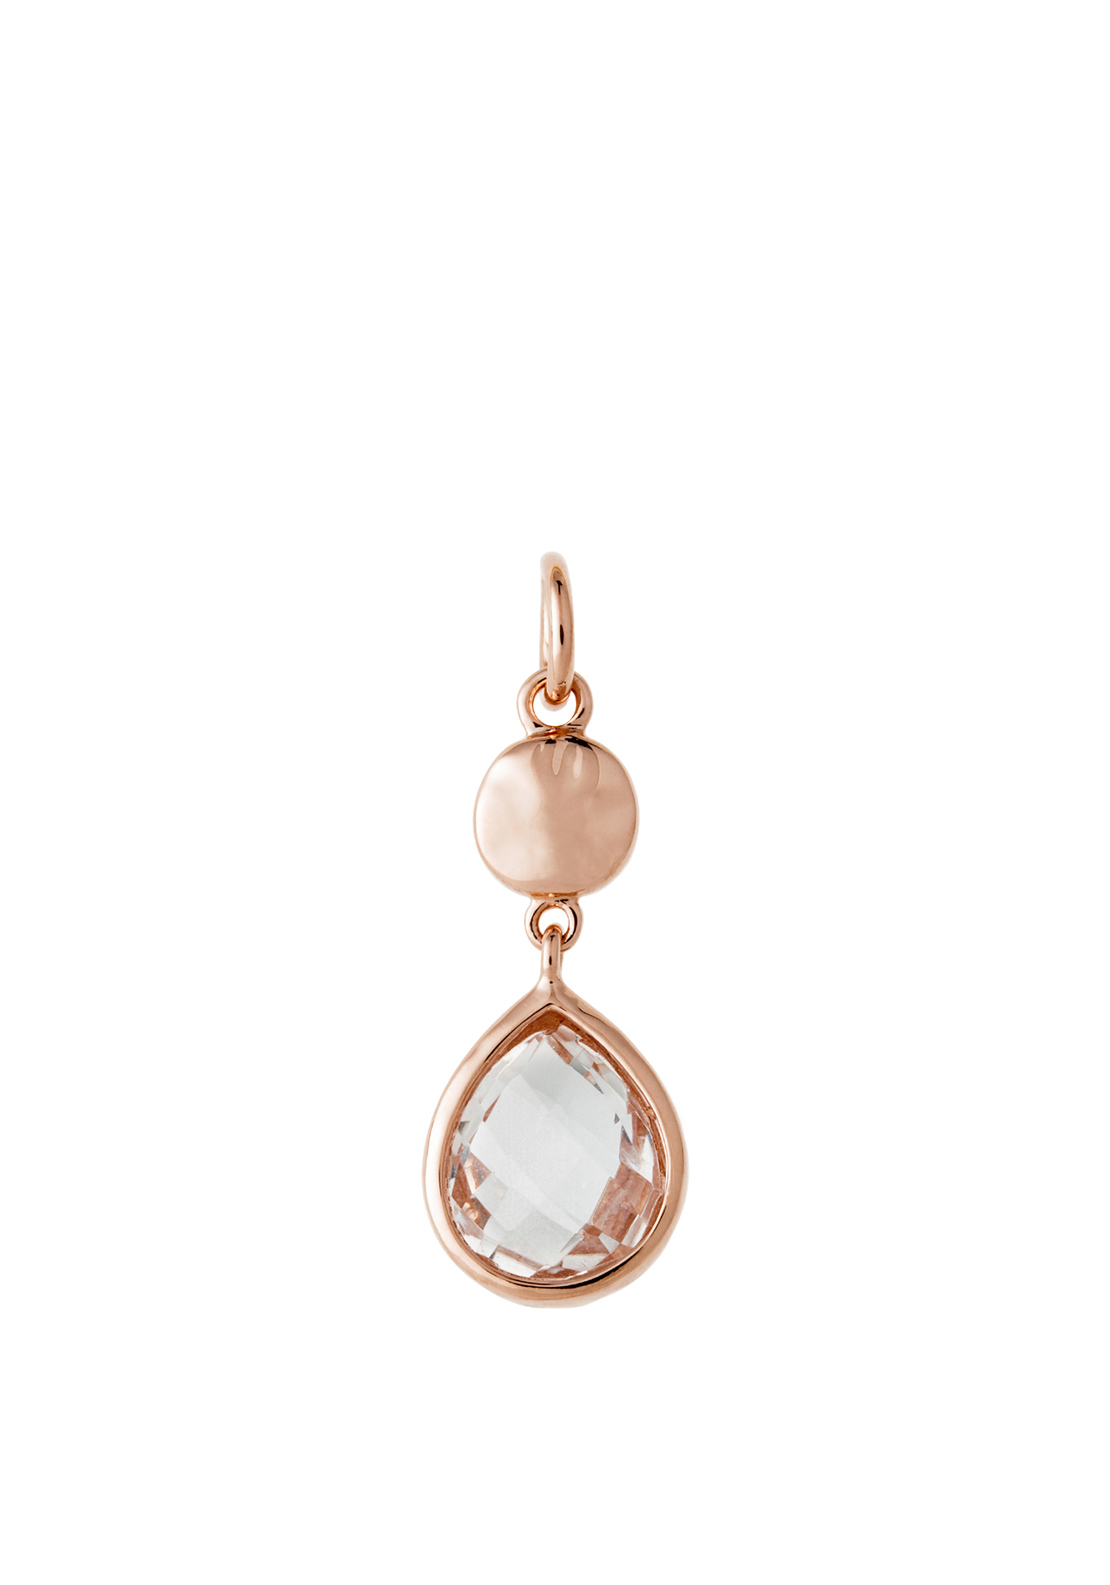 Kirstin Ash Clear Quartz Crystal Teardrop Necklace Charm, Rose-Gold Plated